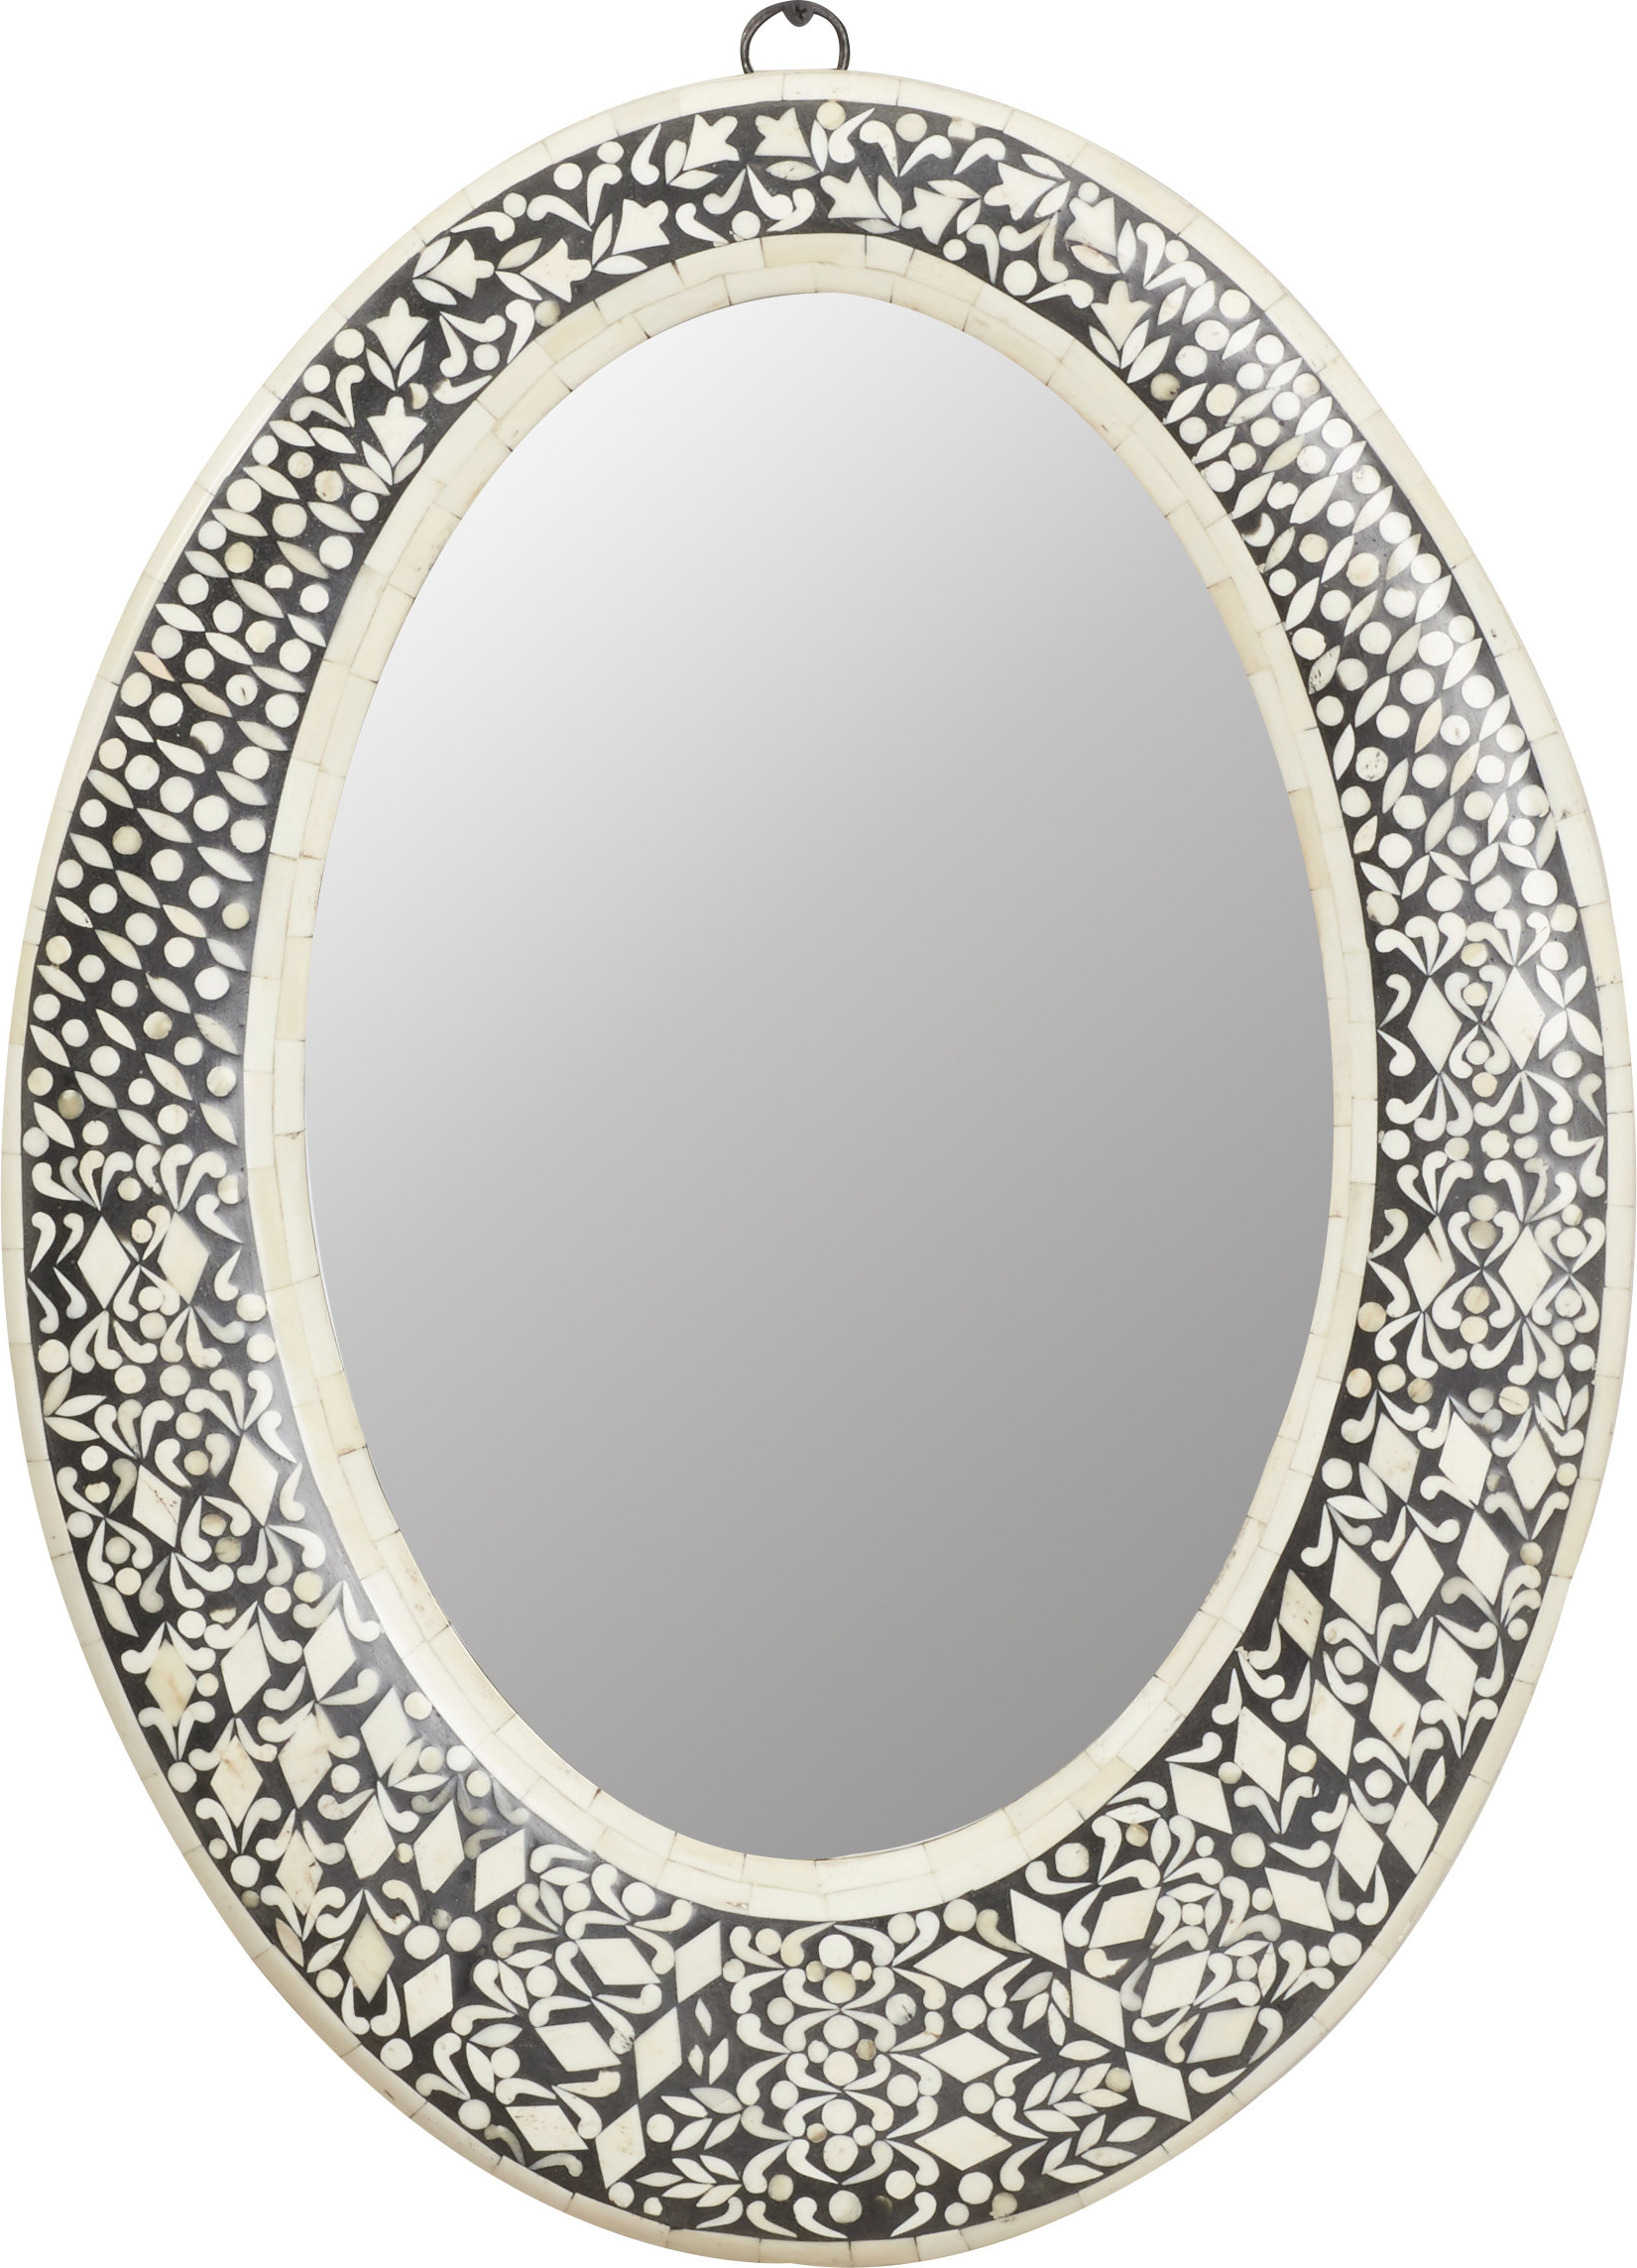 Sajish Oval Crystal Wall Mirrors Regarding Best And Newest Traditional Oval Wall Mirror (View 8 of 20)